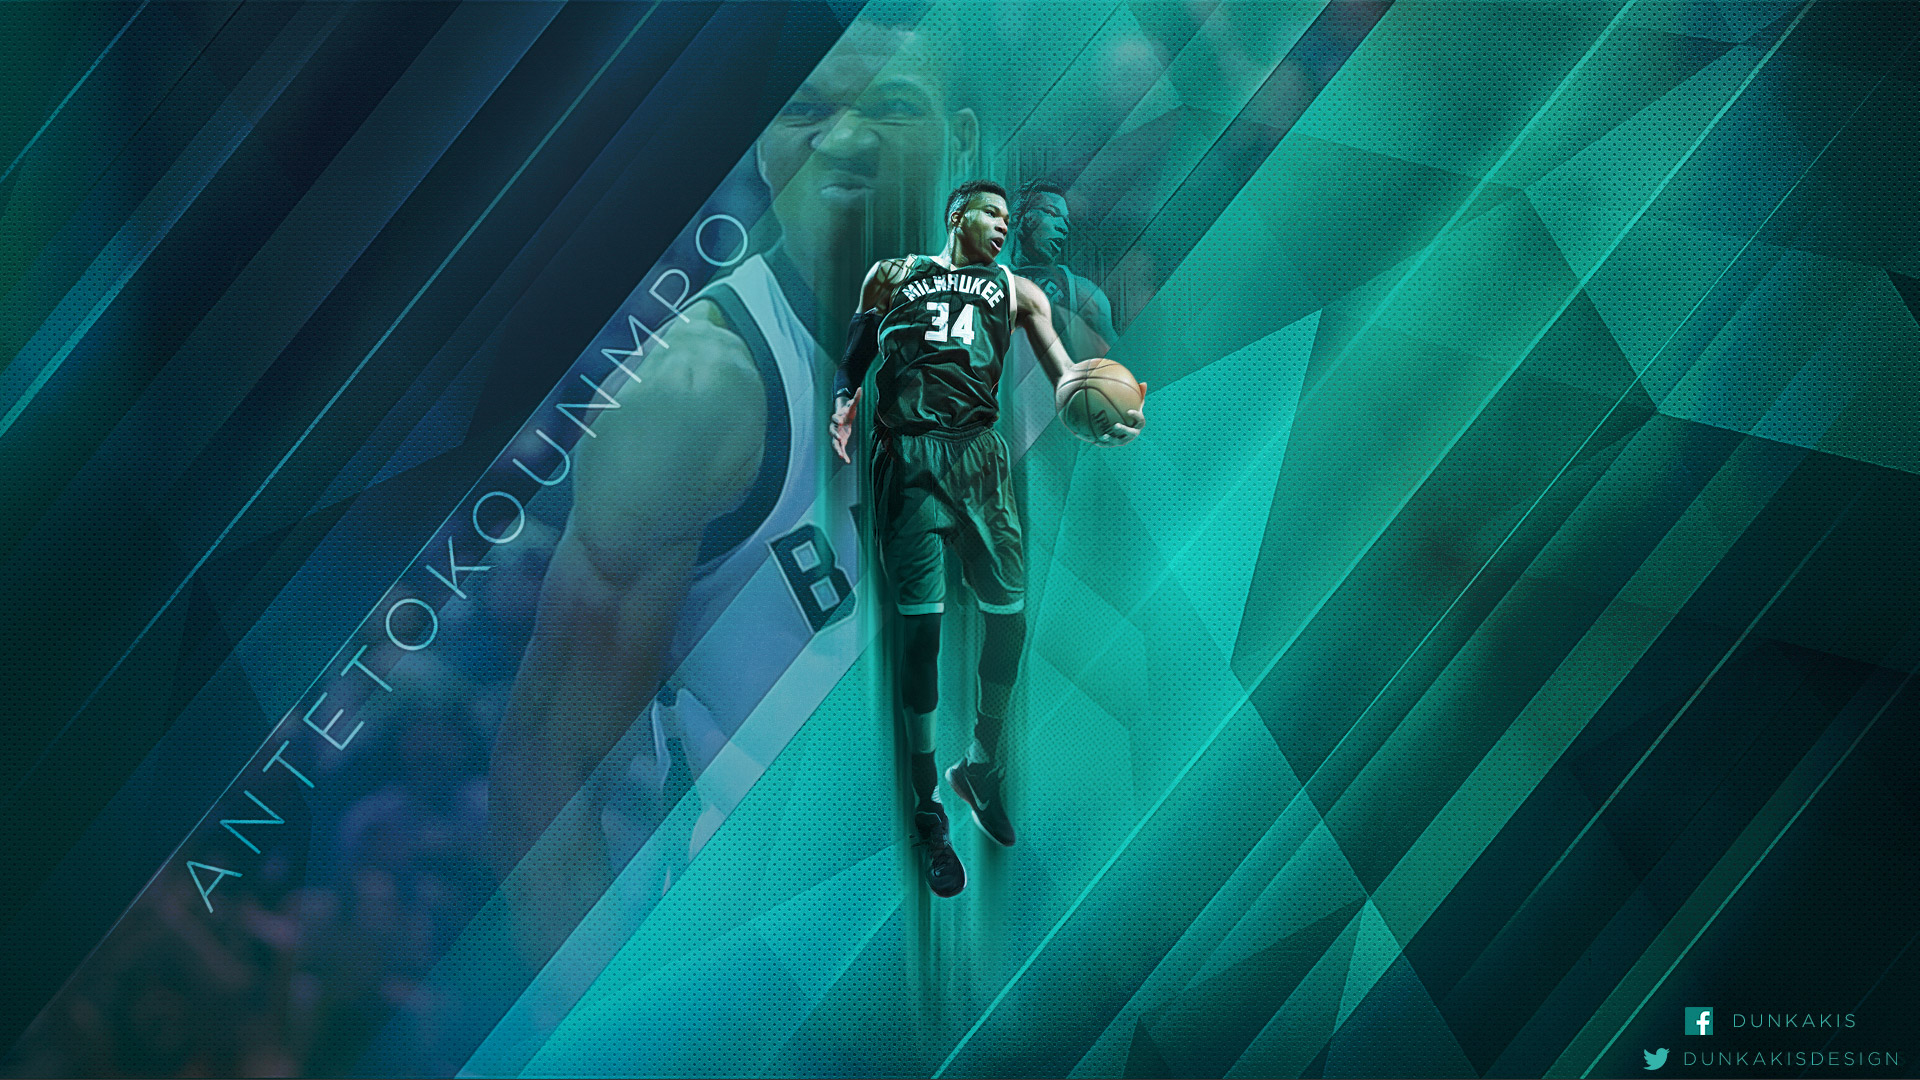 Giannis Antetokounmpo Bucks 2017 1920x1080 Wallpapers